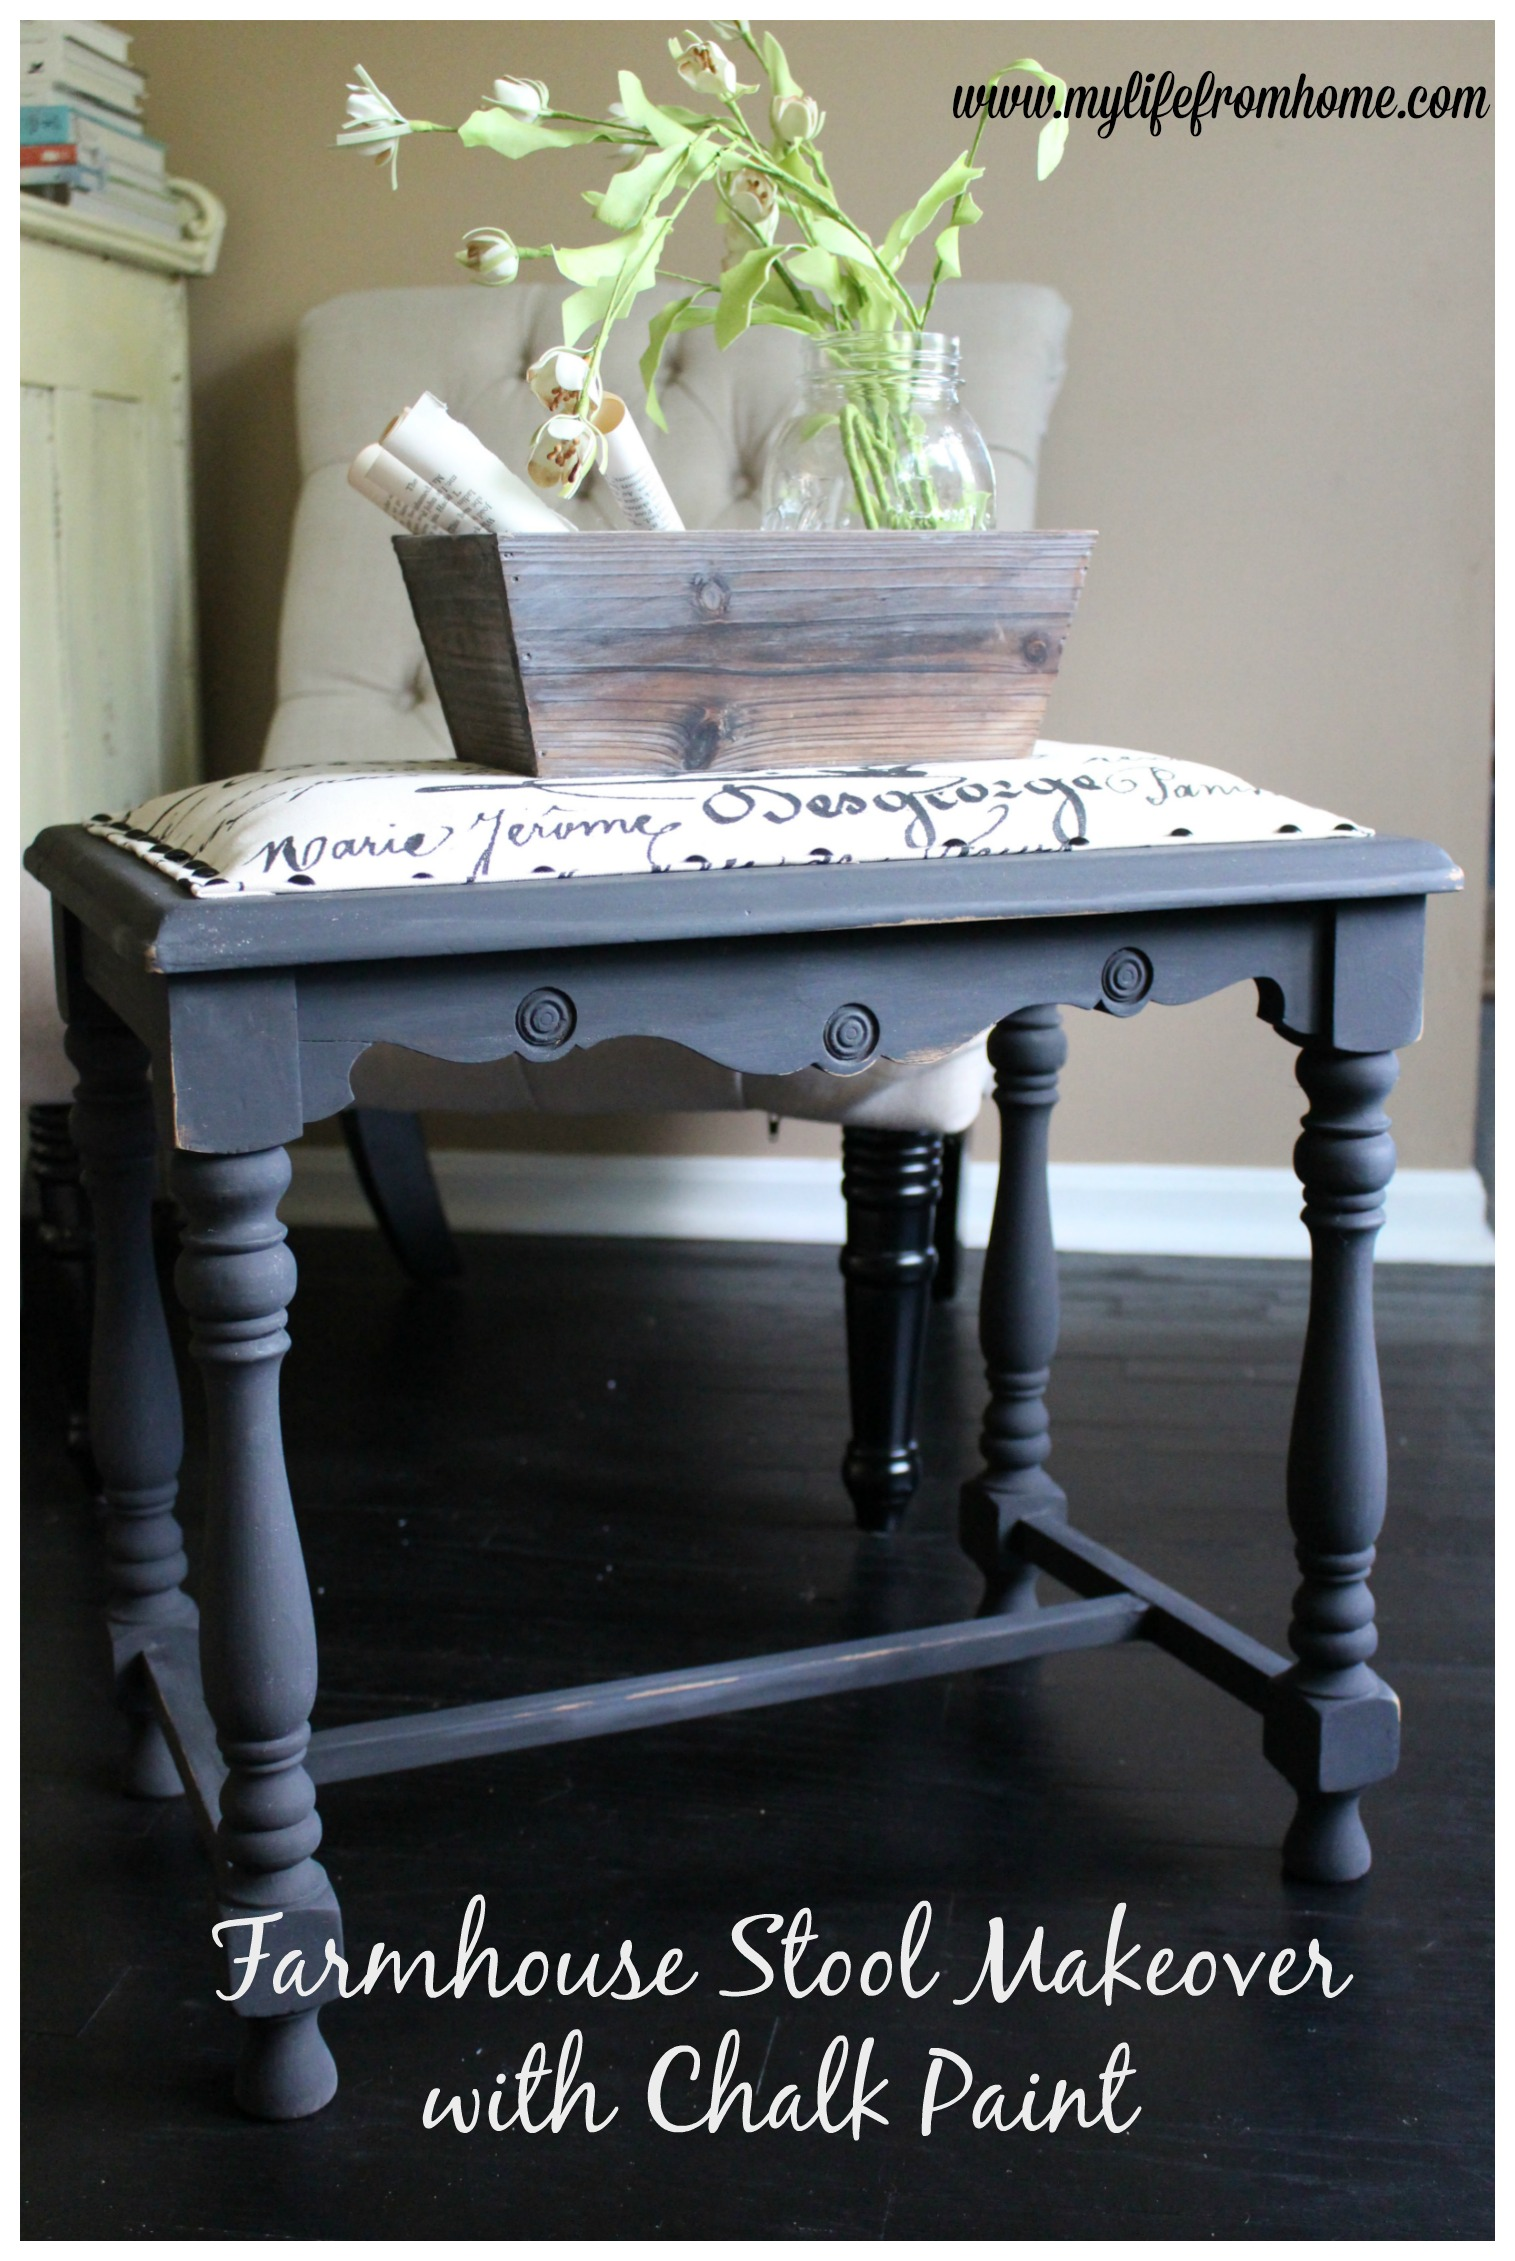 Farmhouse Stool Makeover with Chalk Paint by www.mylifefromhome.com